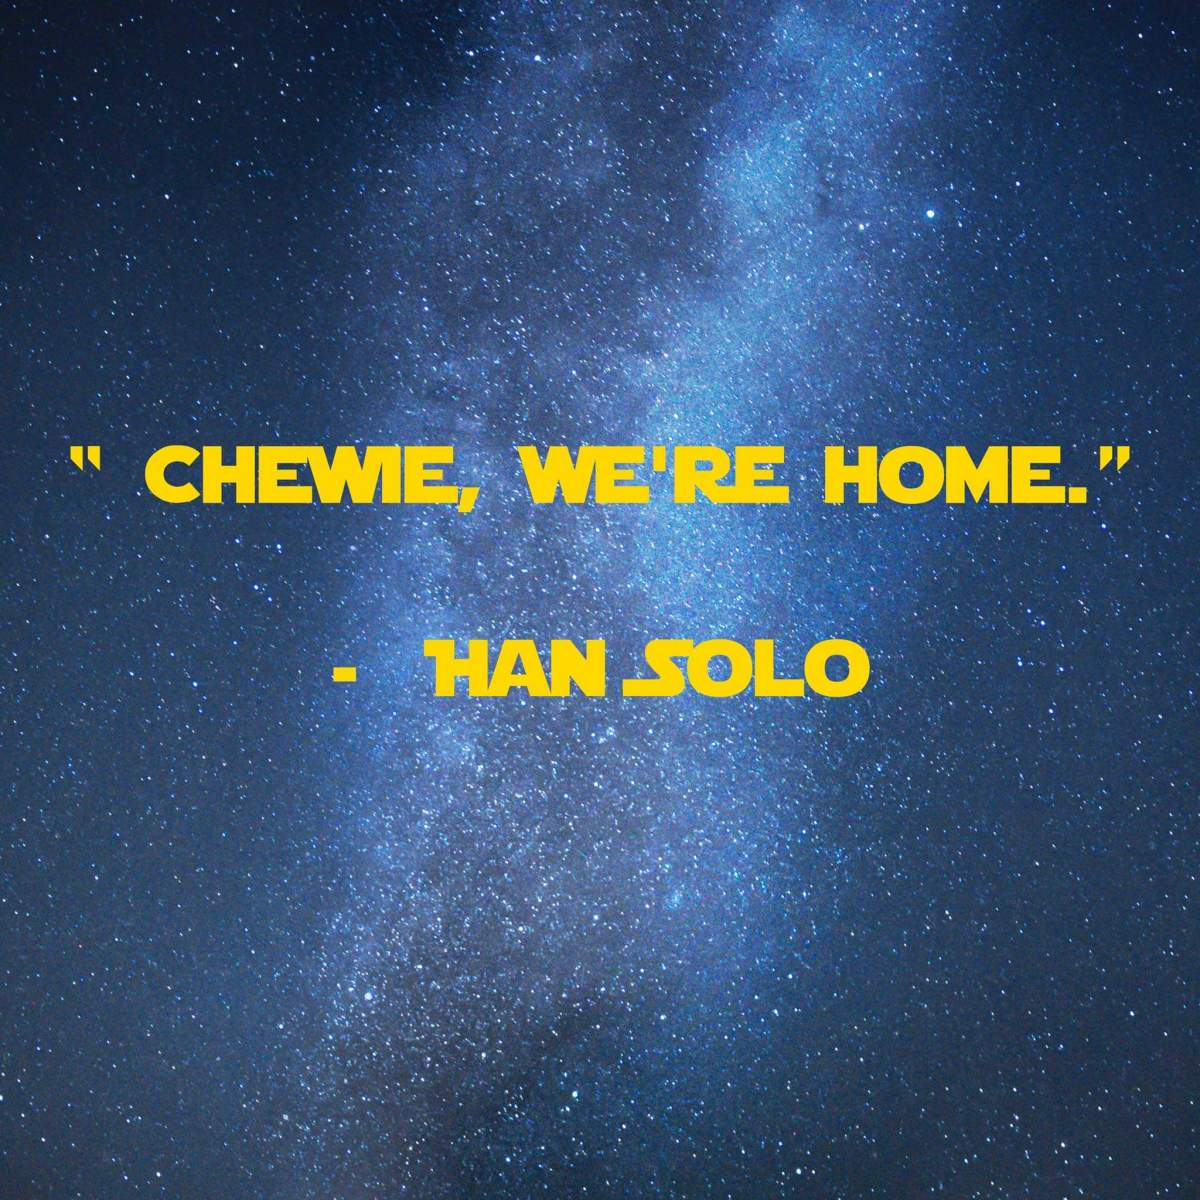 Chewie, We're home. | 31 Memorable Star Wars Quotes for Geeks